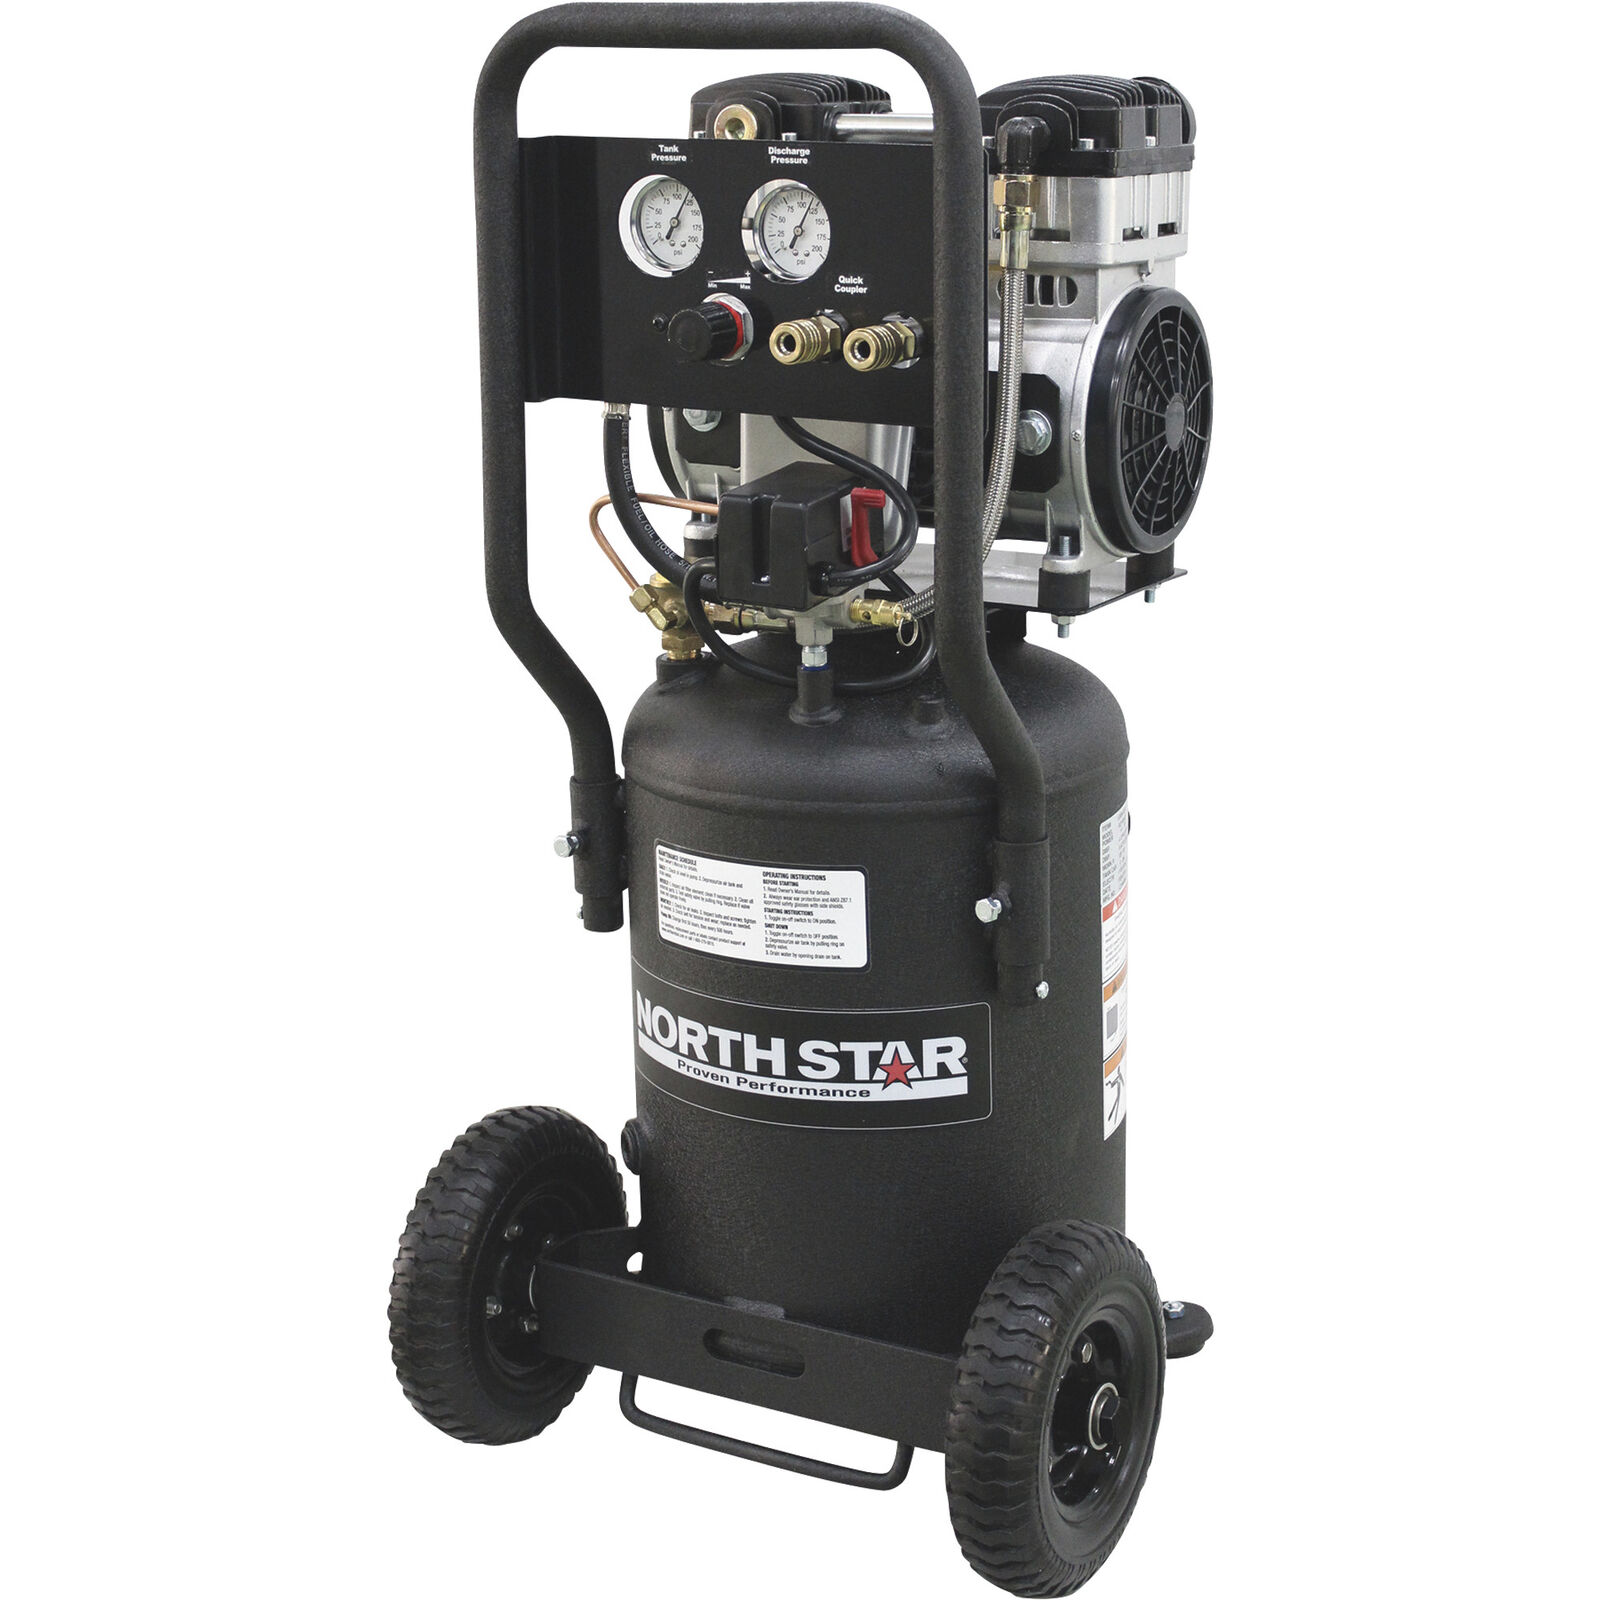 NorthStar Electric Air Compressor- 1.5 HP 8-Gallon Vertical Tank Portable. Buy it now for 294.99